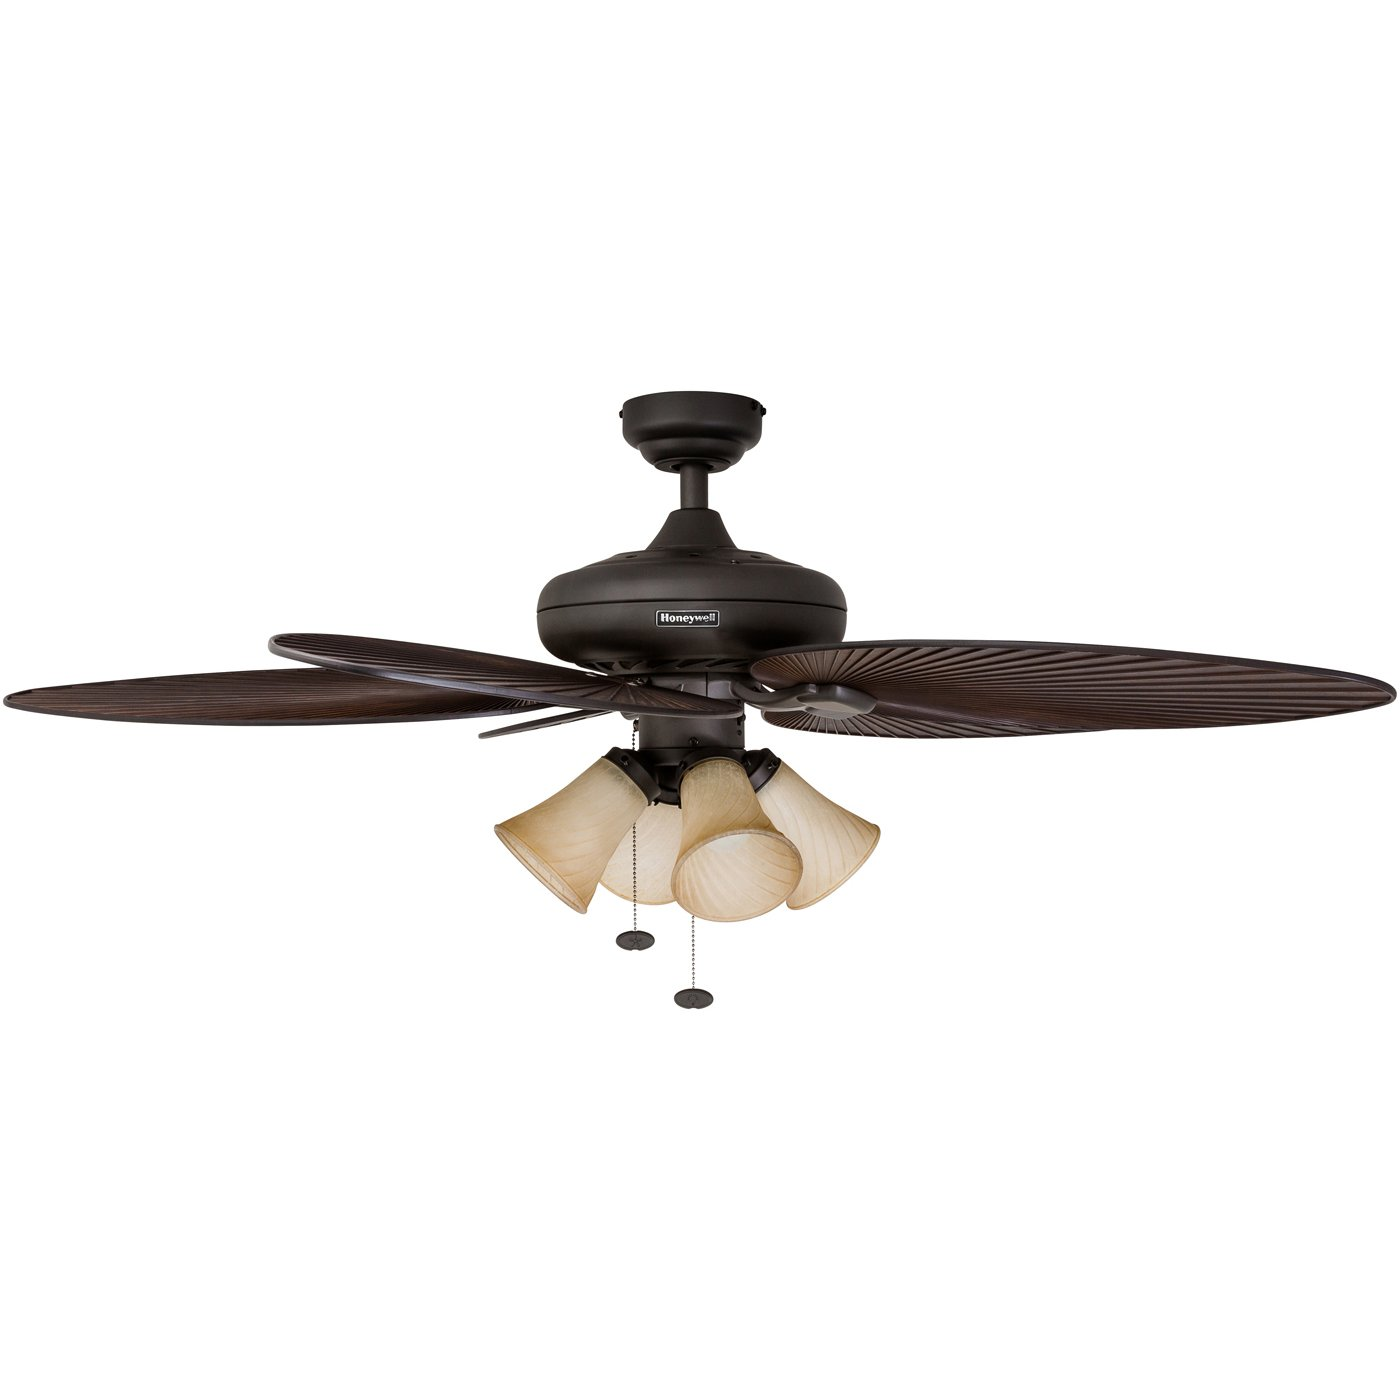 Honeywell Palm Island 52 Inch Tropical Ceiling Fan with 4 Sunset